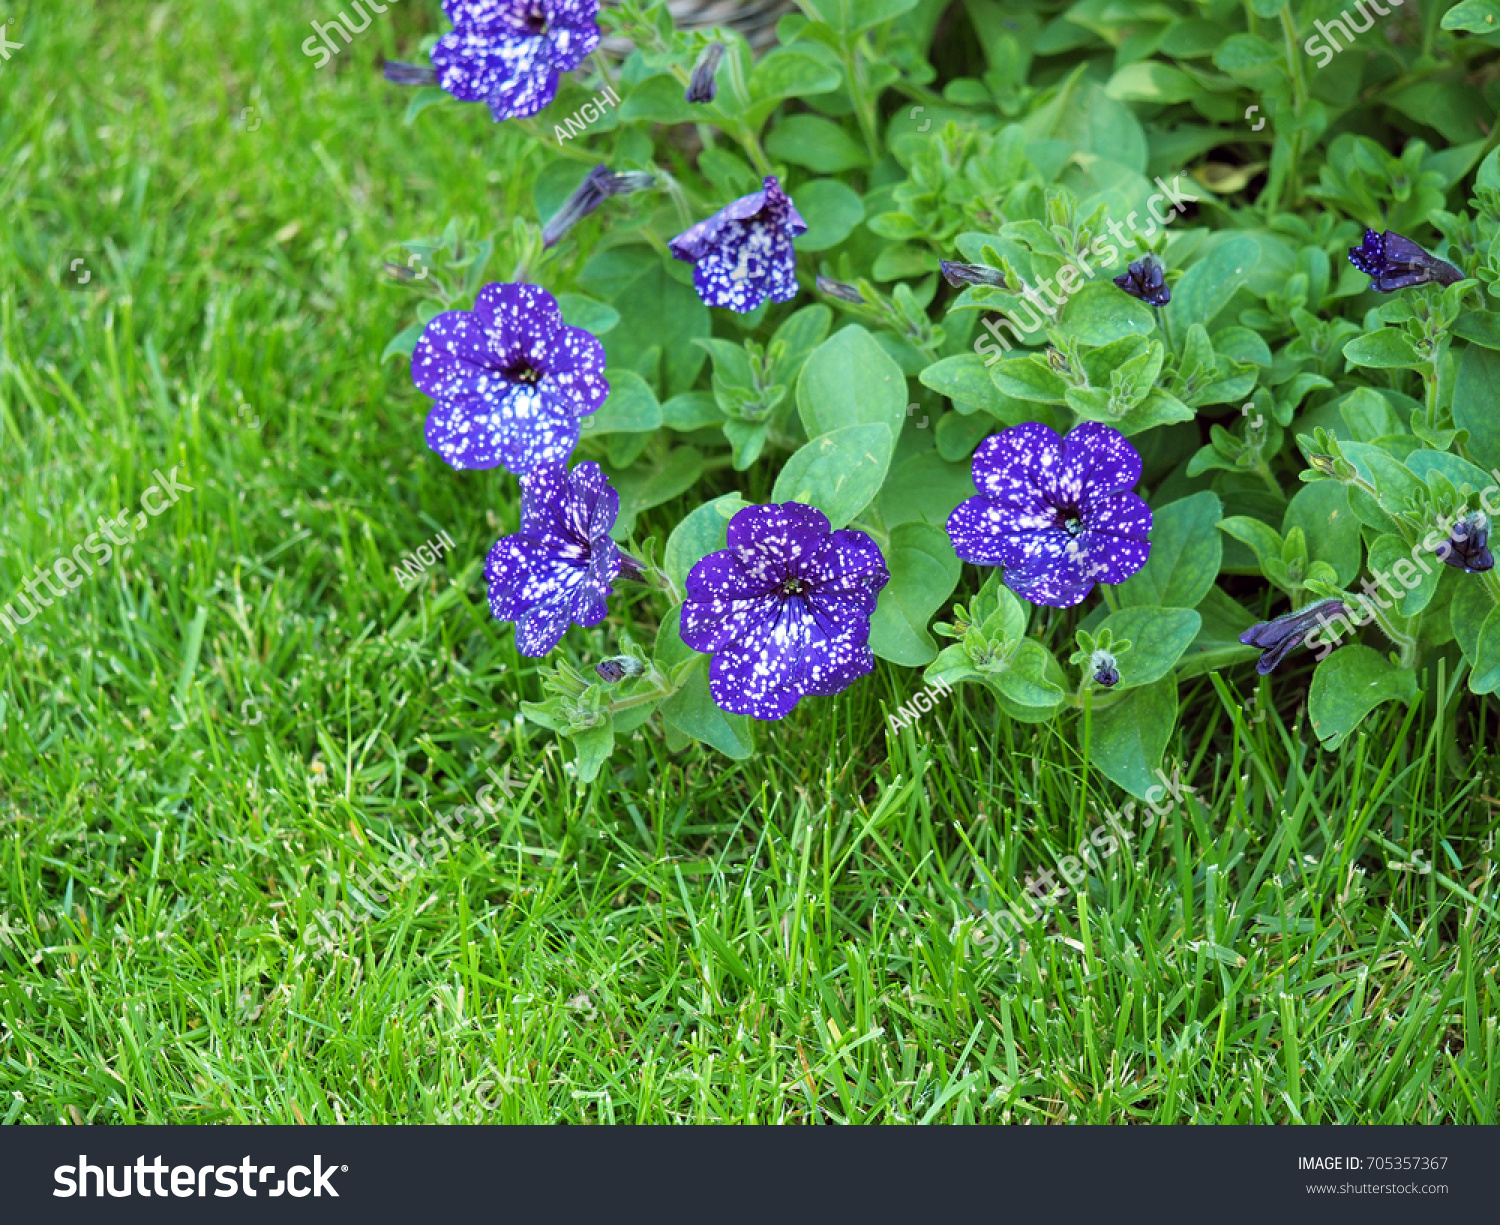 Ampel petunia is one of the popular types of garden flowers 72